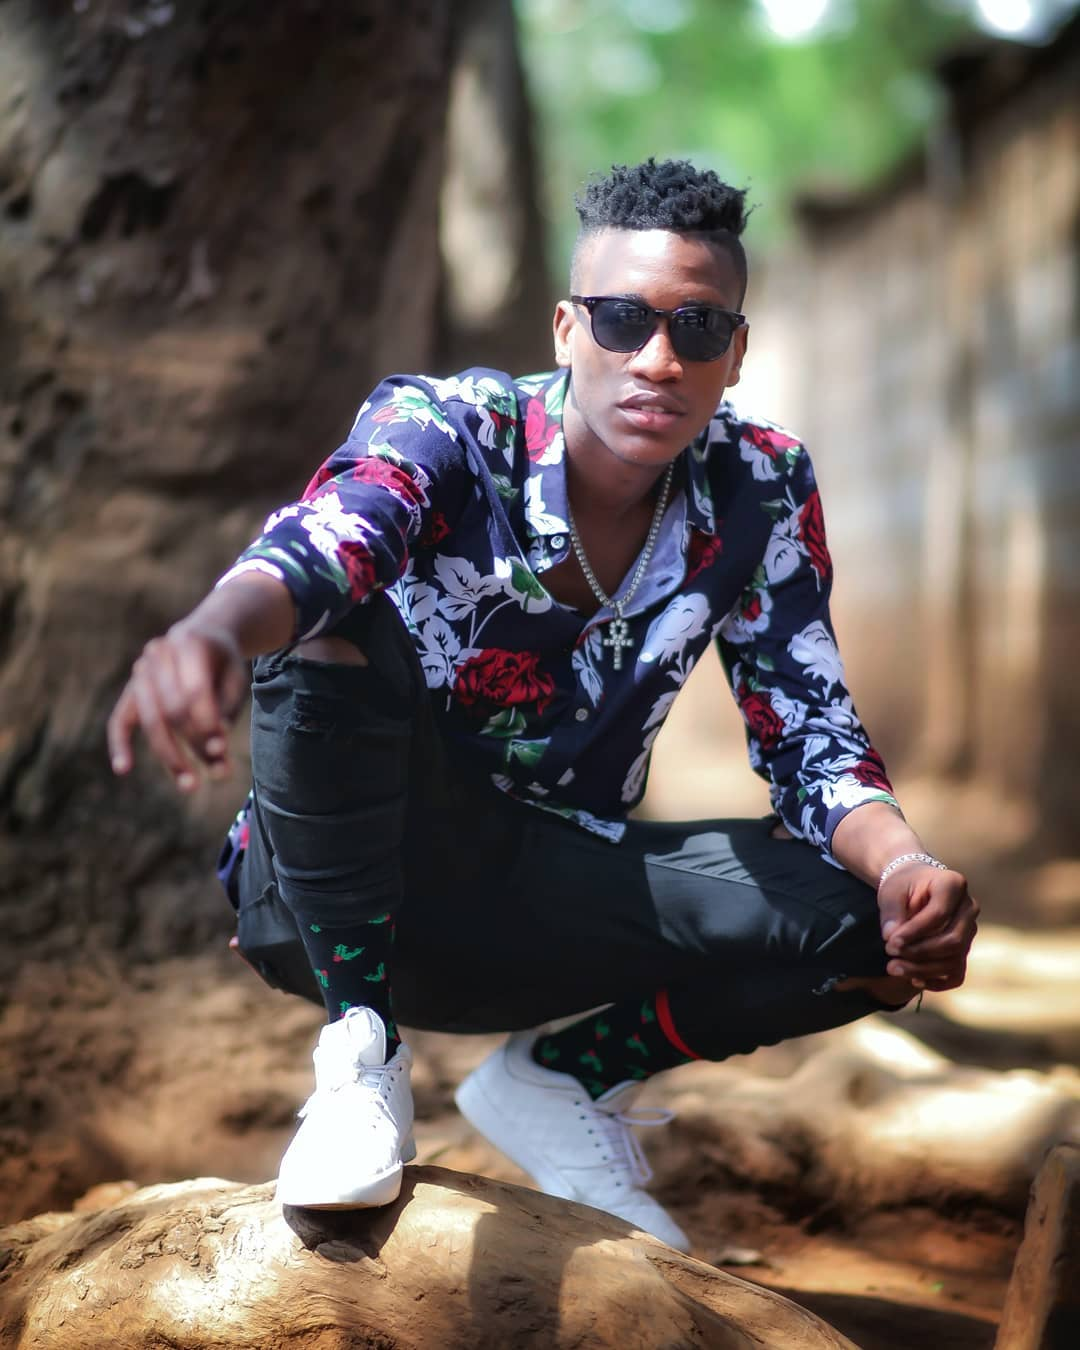 nduume - Ndume! Mr Seed signs Willy Paul's ex dancer